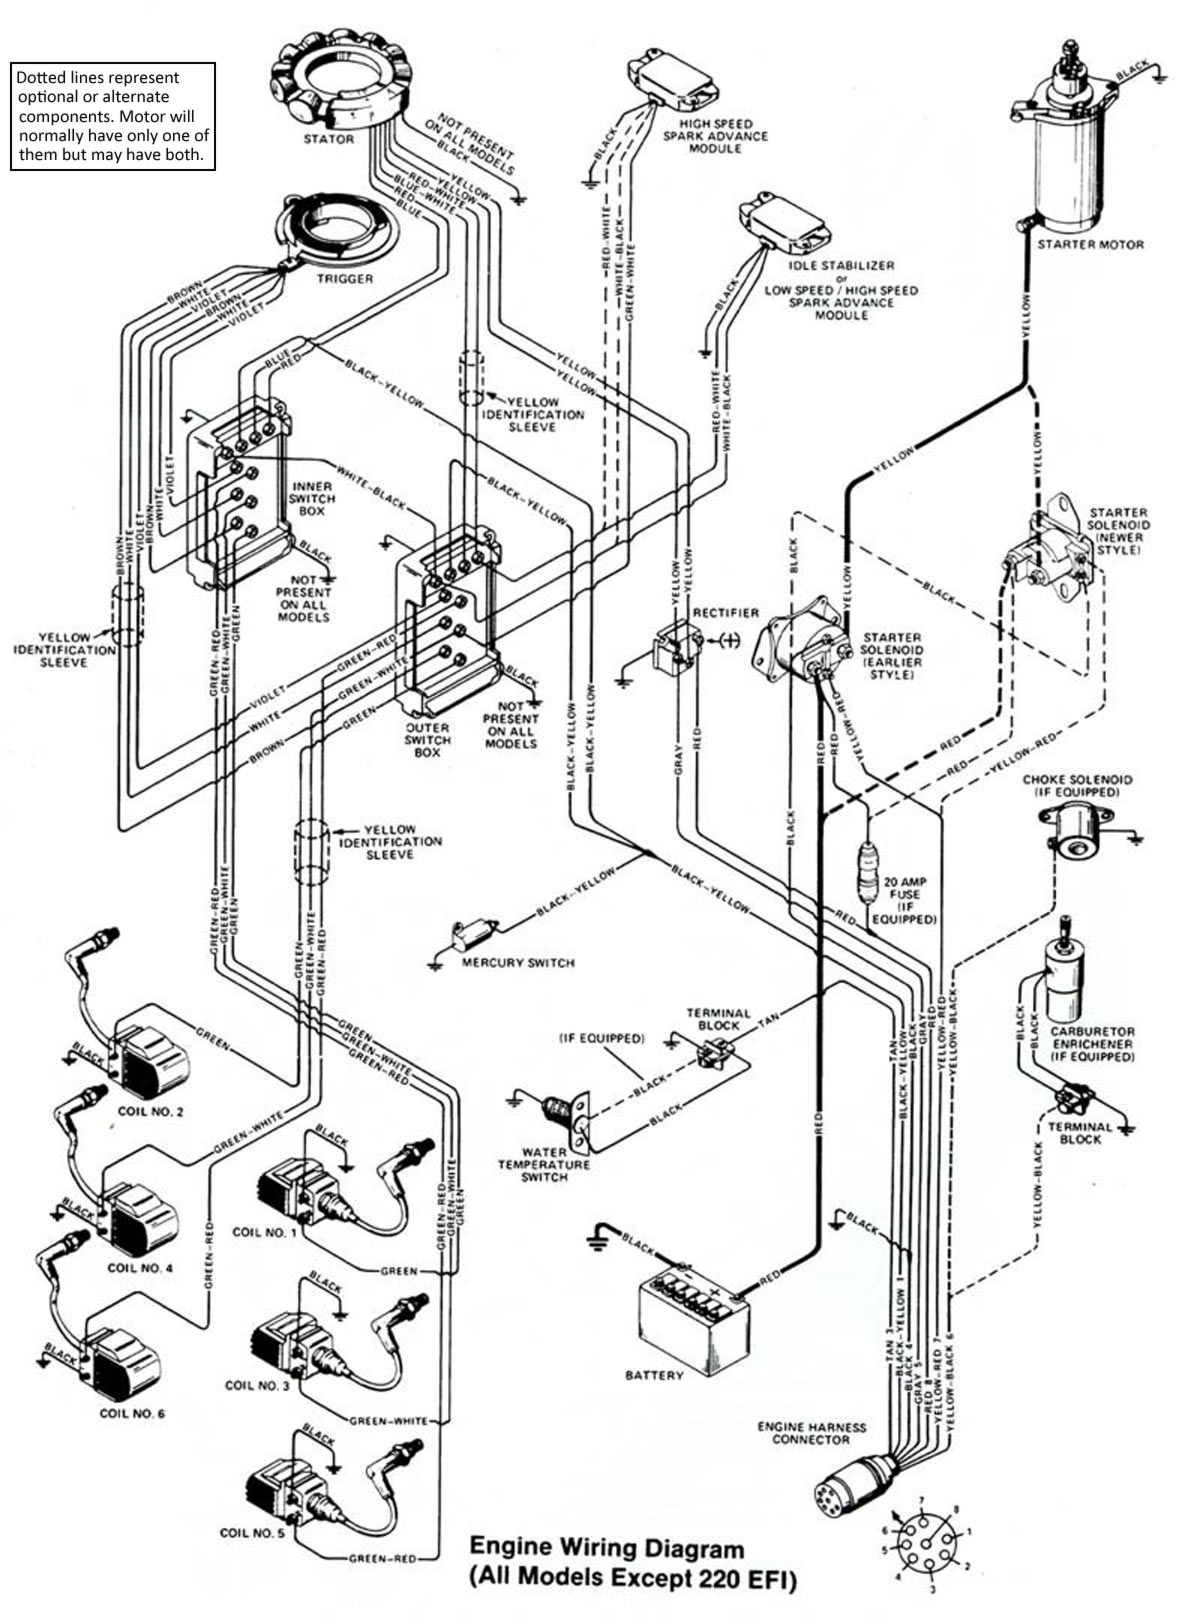 Mercury efi wiring diagram wiring diagram database mercury 150 efi tach wiring wiring diagram database 30 hp mercury outboard wiring diagram mercury efi